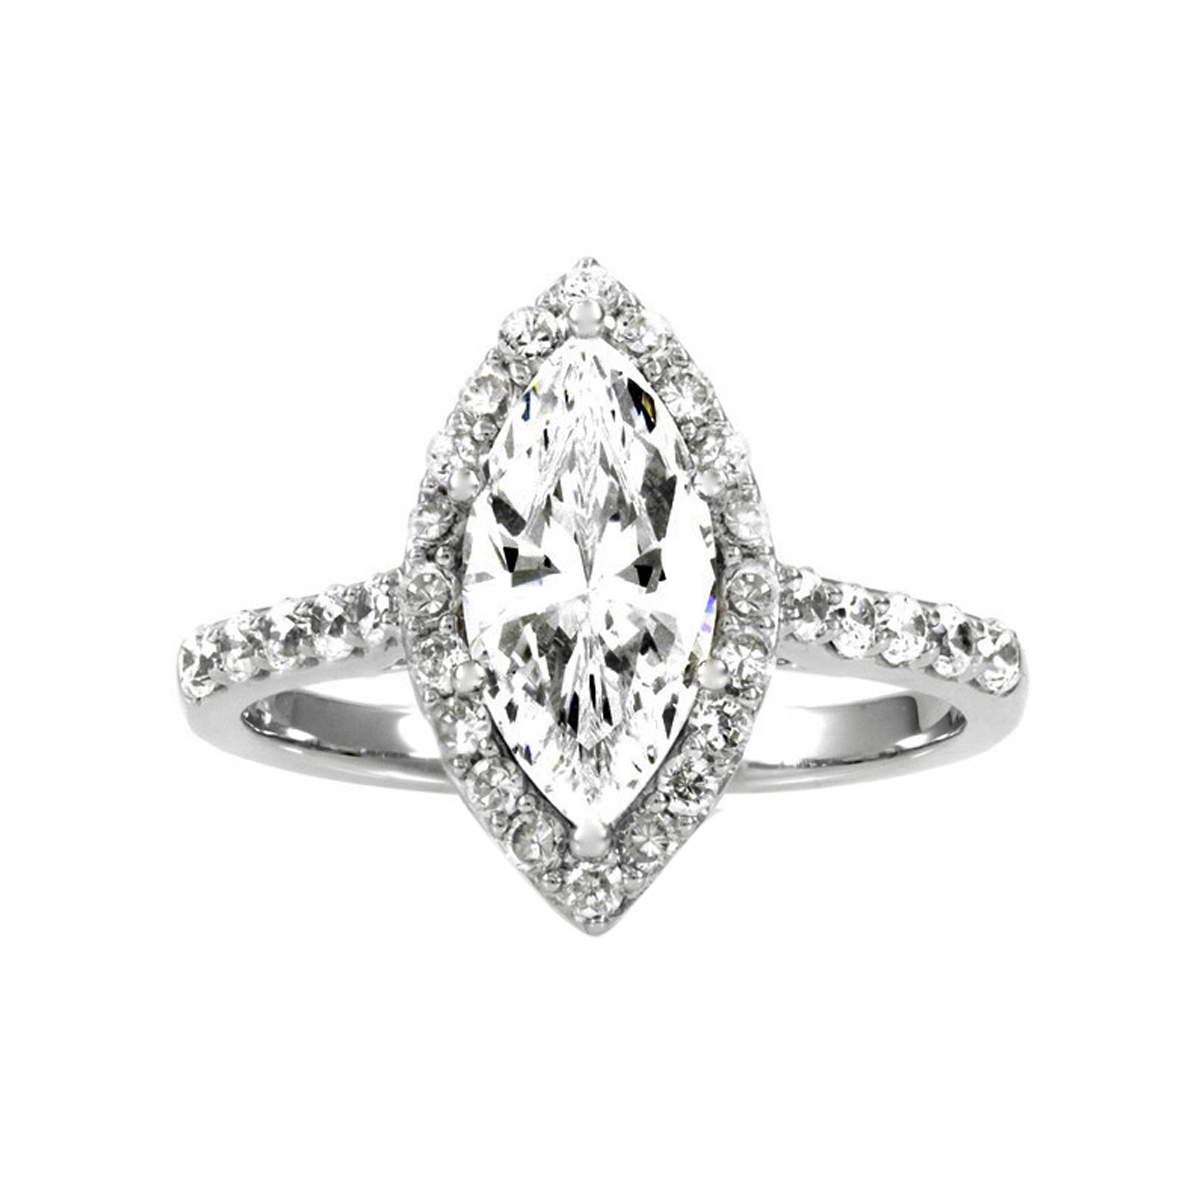 Marquise cubic zirconia engagement rings - Marquise pas cher ...